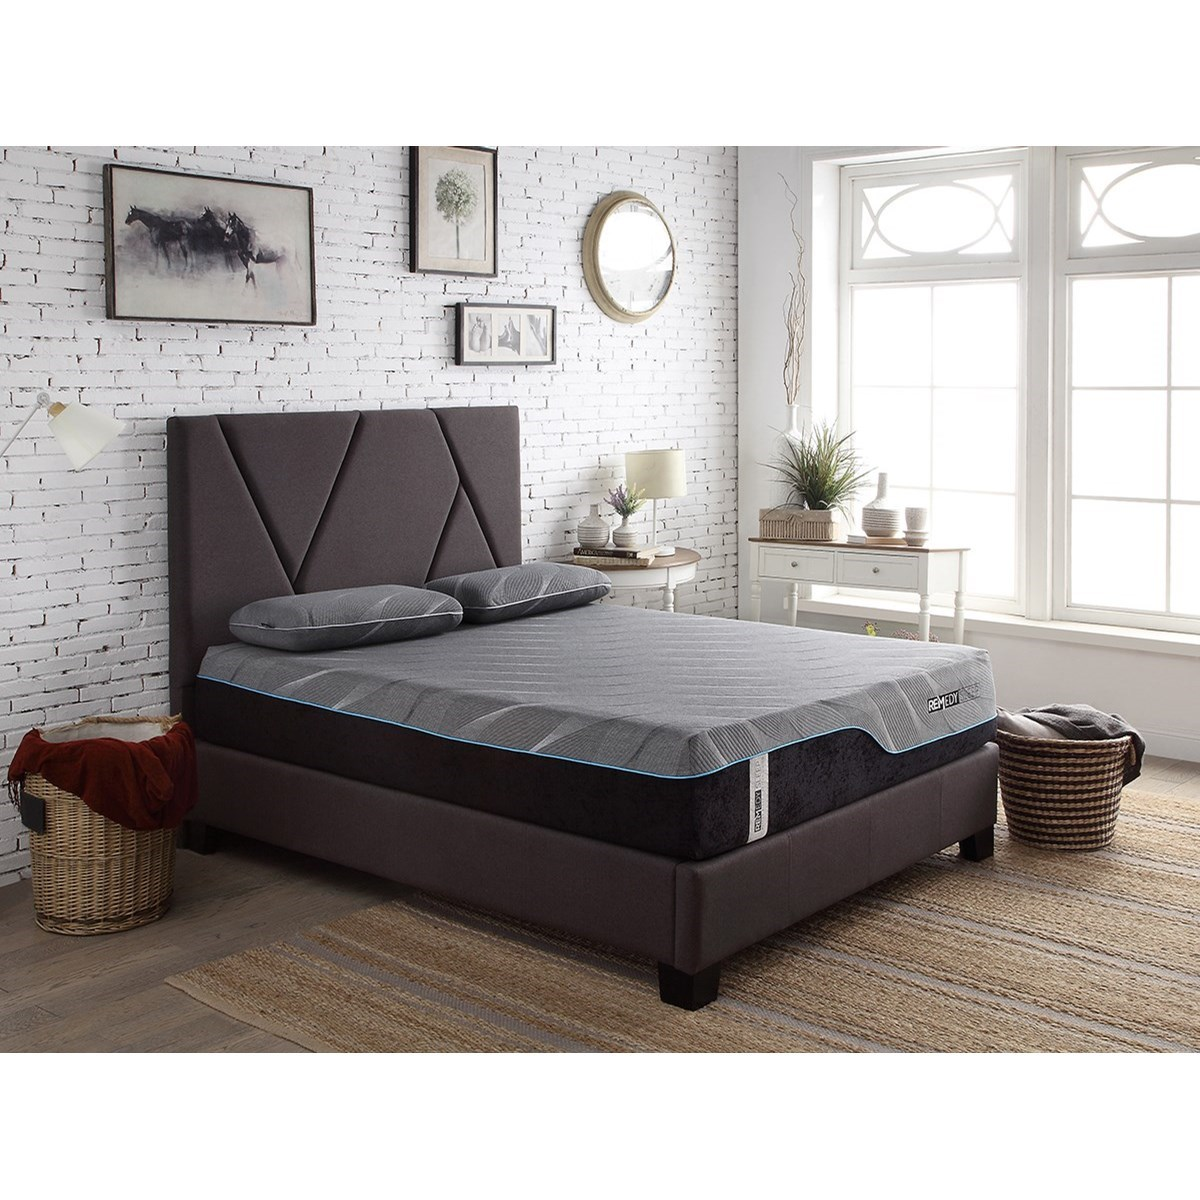 Modern Bed Frame Design Modern Beds Contemporary Queen Upholstered Bed By Legends Furniture At Vandrie Home Furnishings